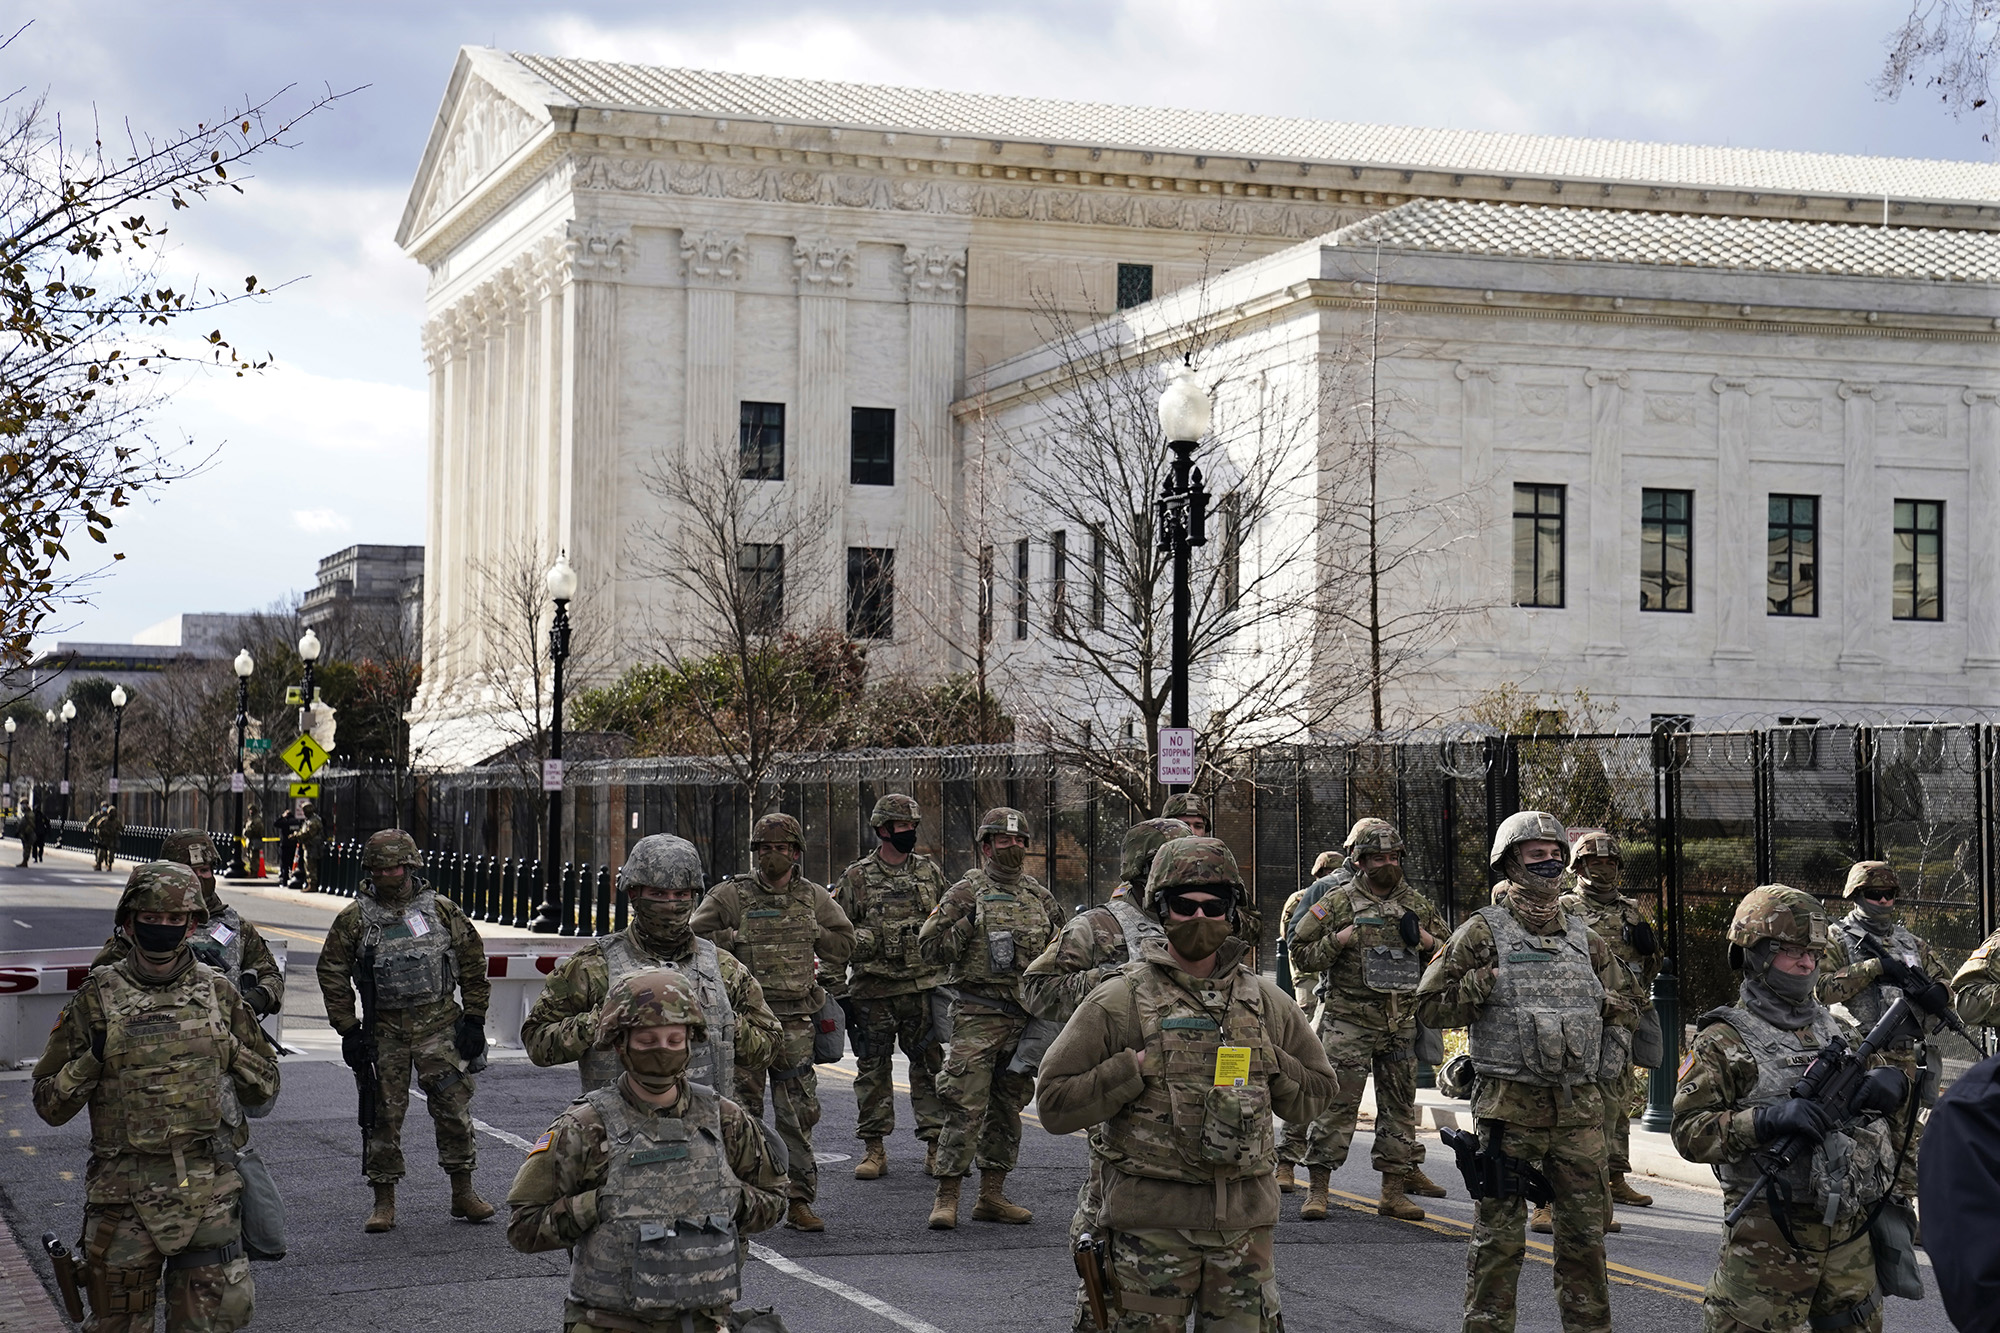 Members of the National Guard stand at a road block near the Supreme Court ahead of President-elect Joe Biden's inauguration ceremony, Wednesday, Jan. 20, 2021, in Washington. (John Minchillo/AP)